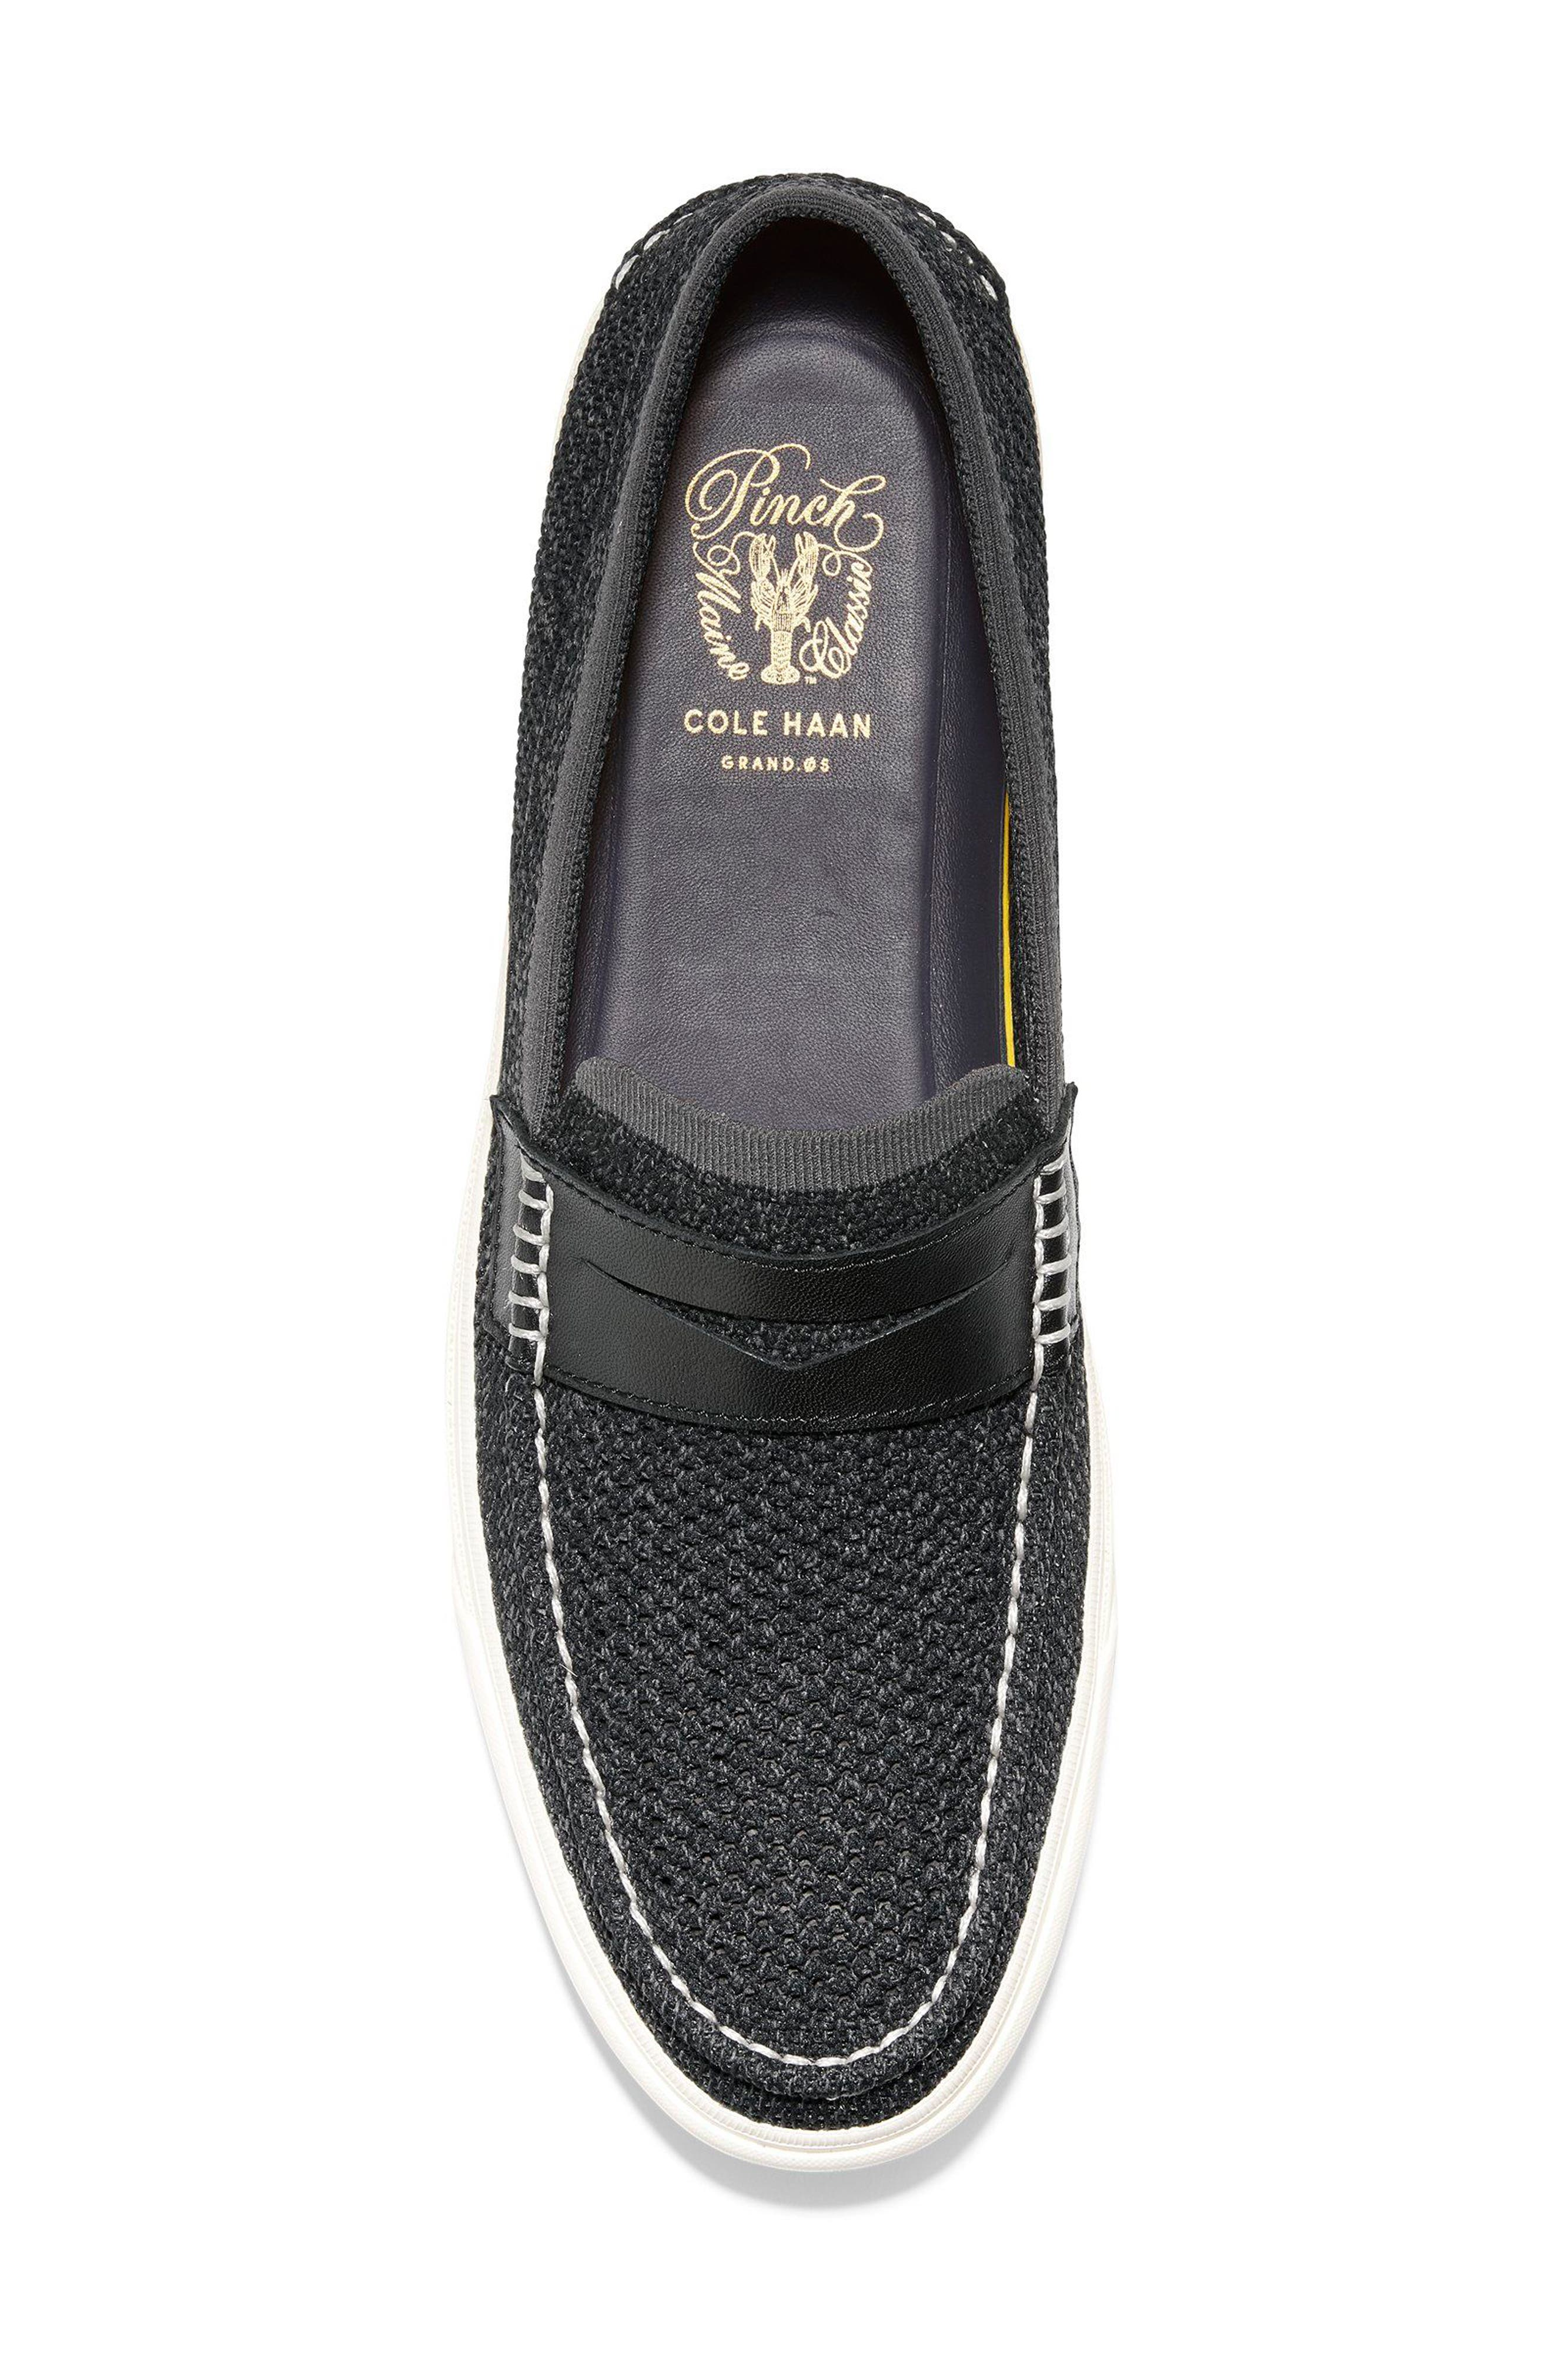 Pinch Weekend Stitch Penny Loafer,                             Alternate thumbnail 5, color,                             BLACK MAGNET